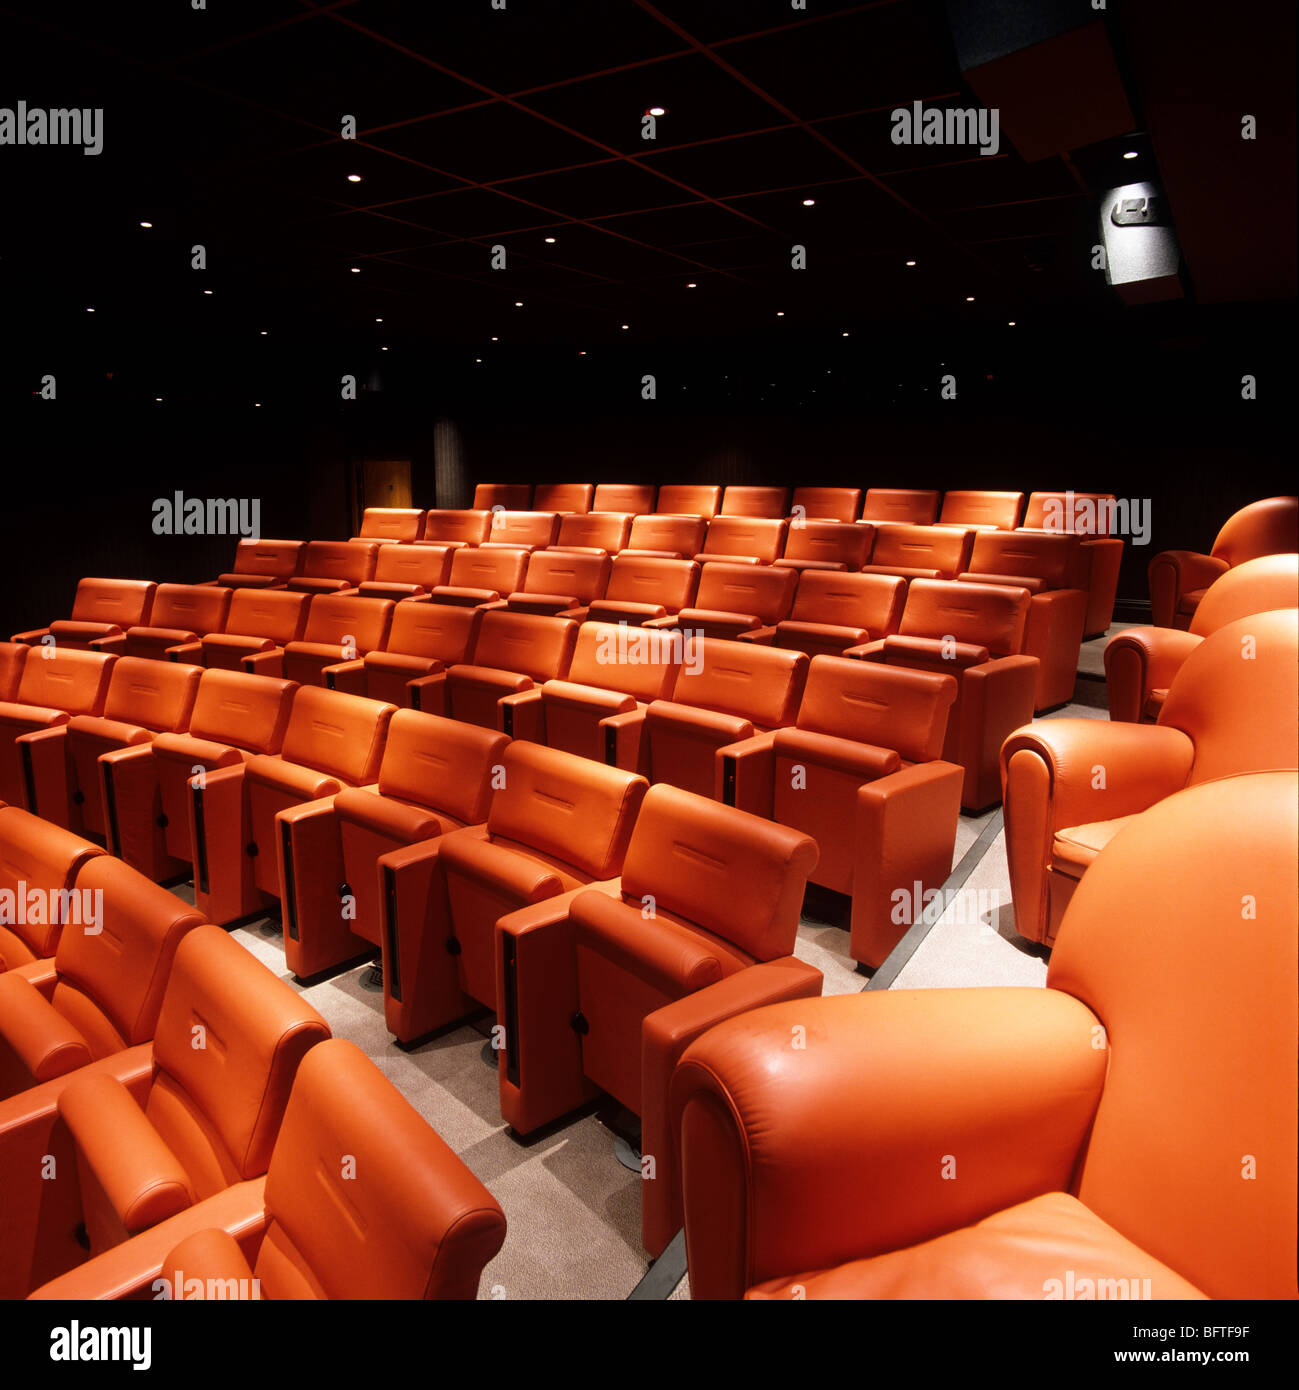 Audience seating designed by Poltrona Frau at the private viewing cinema of the Charlotte Street Hotel, London - Stock Image